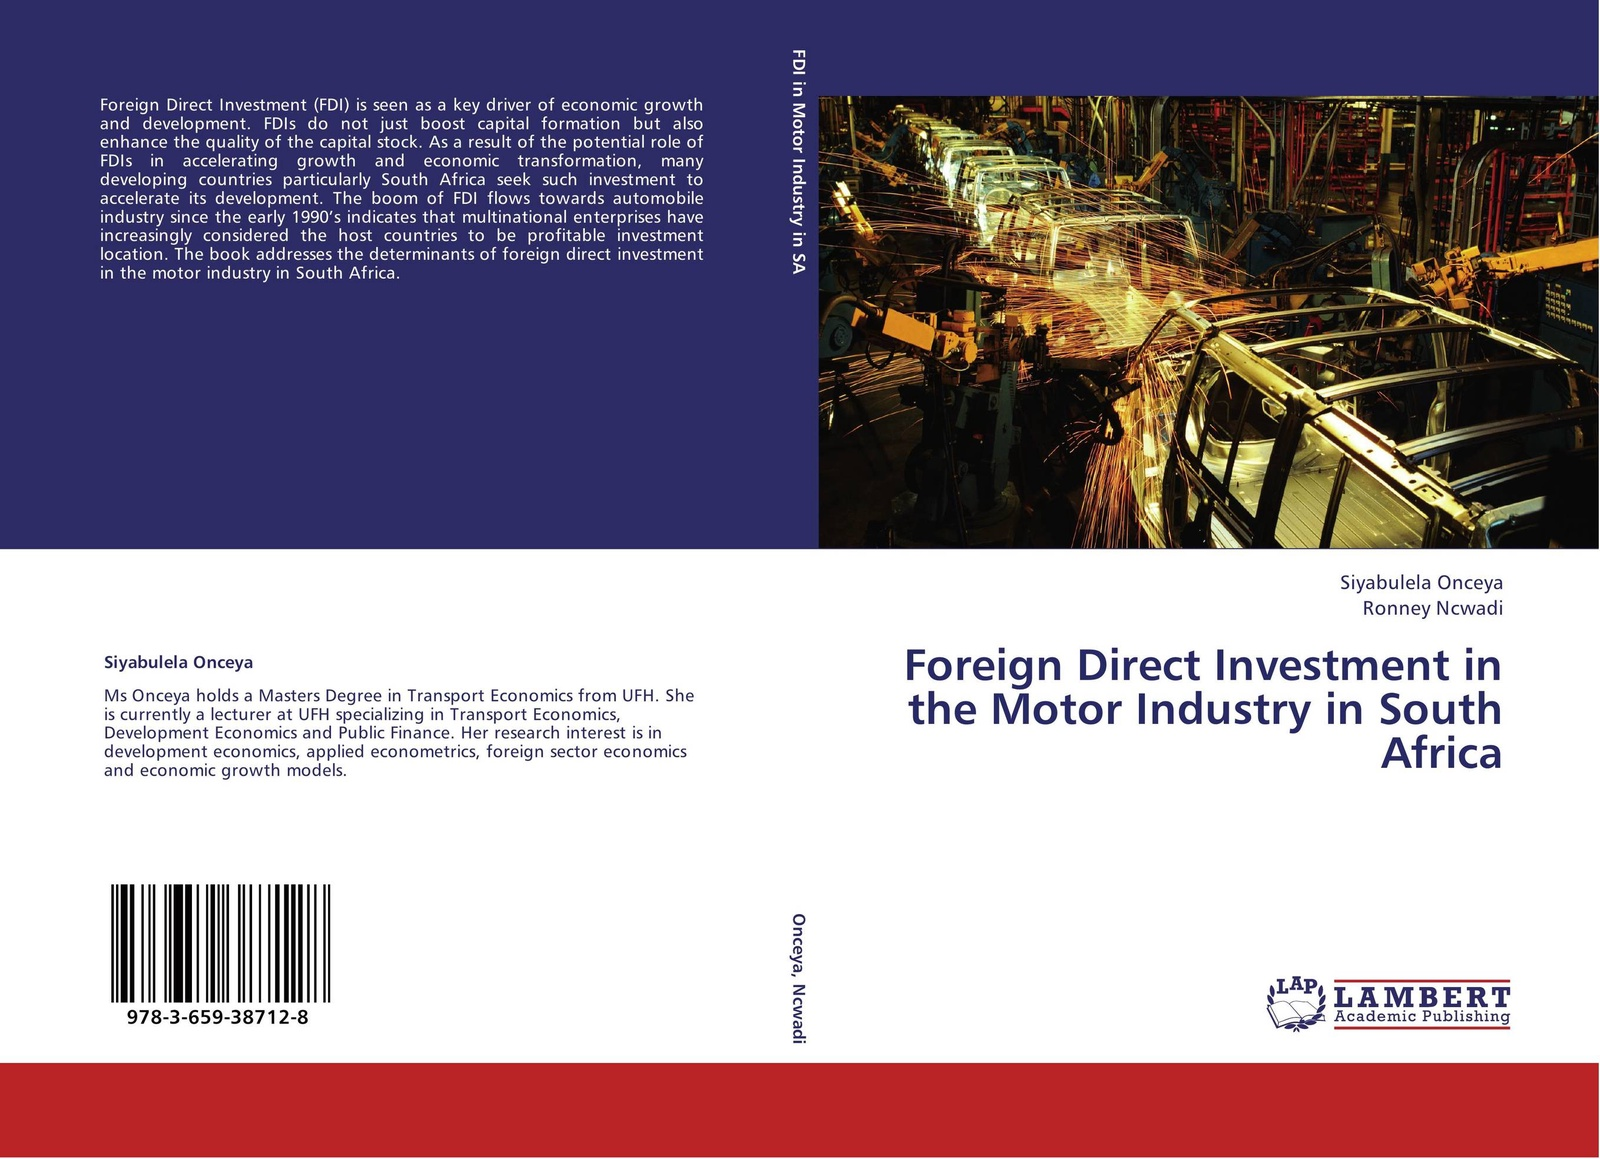 Siyabulela Onceya and Ronney Ncwadi Foreign Direct Investment in the Motor Industry in South Africa andreas epperlein foreign direct investment in ireland under consideration of the financial services sector in particular